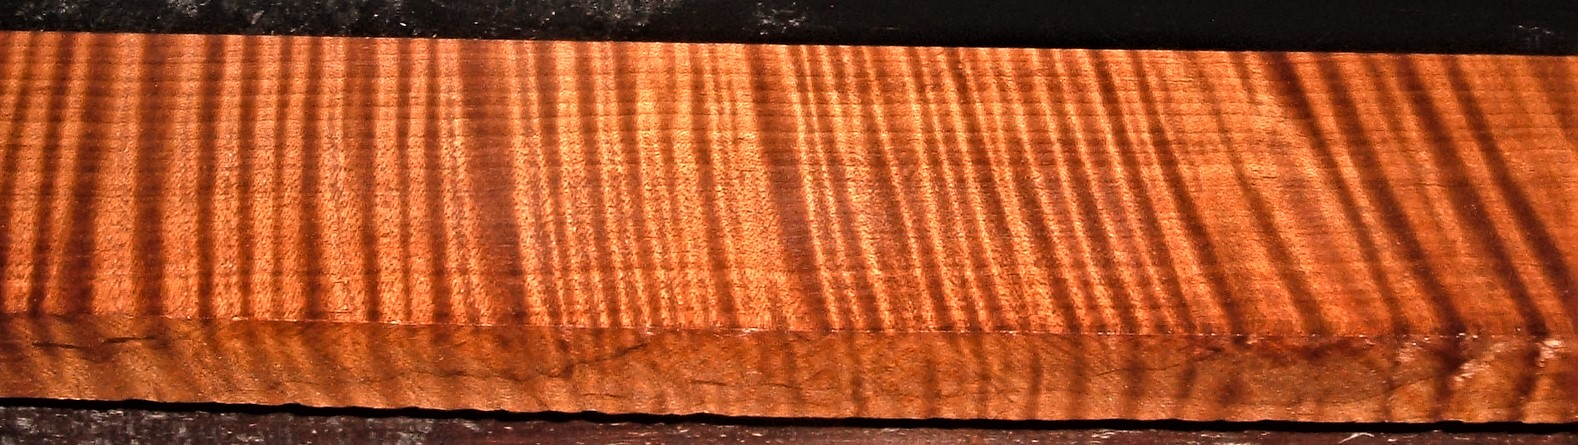 QRM2009-246JK, 1-1/4x3x49, Roasted Torrefied, Curly Tiger Quartersawn Maple